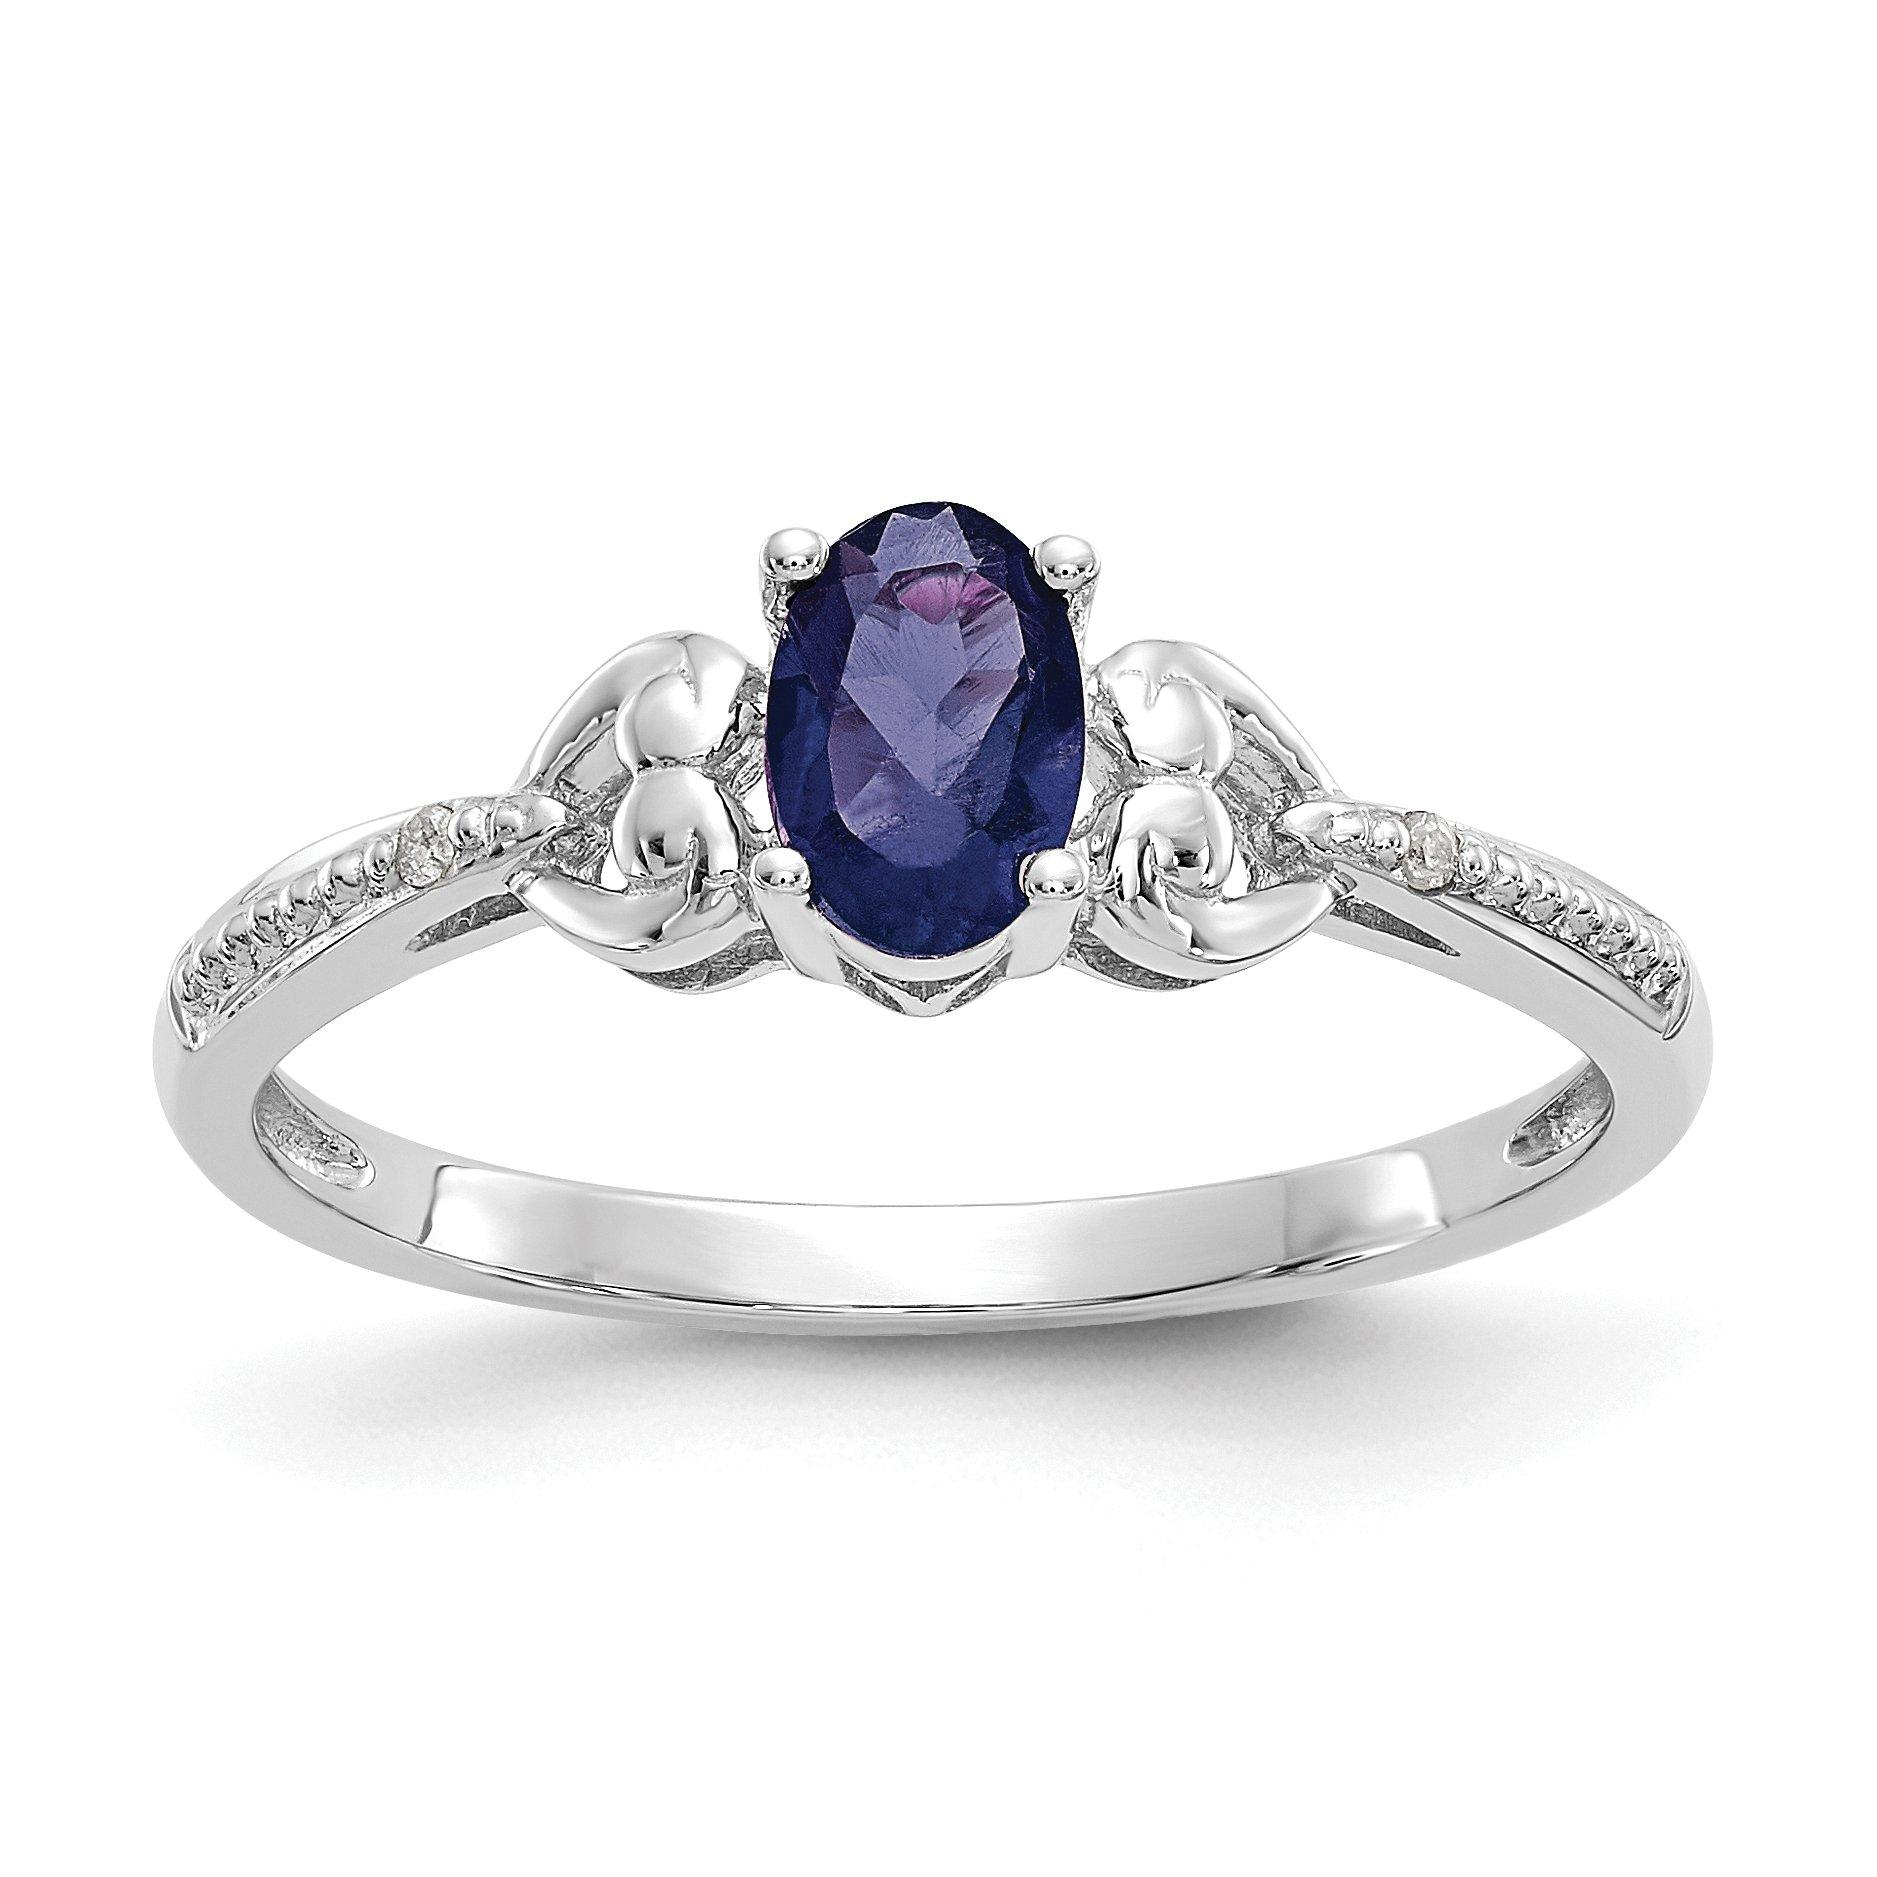 s sapphire engagement ring amazon dp size dark silver white created com gents men rings and sterling blue